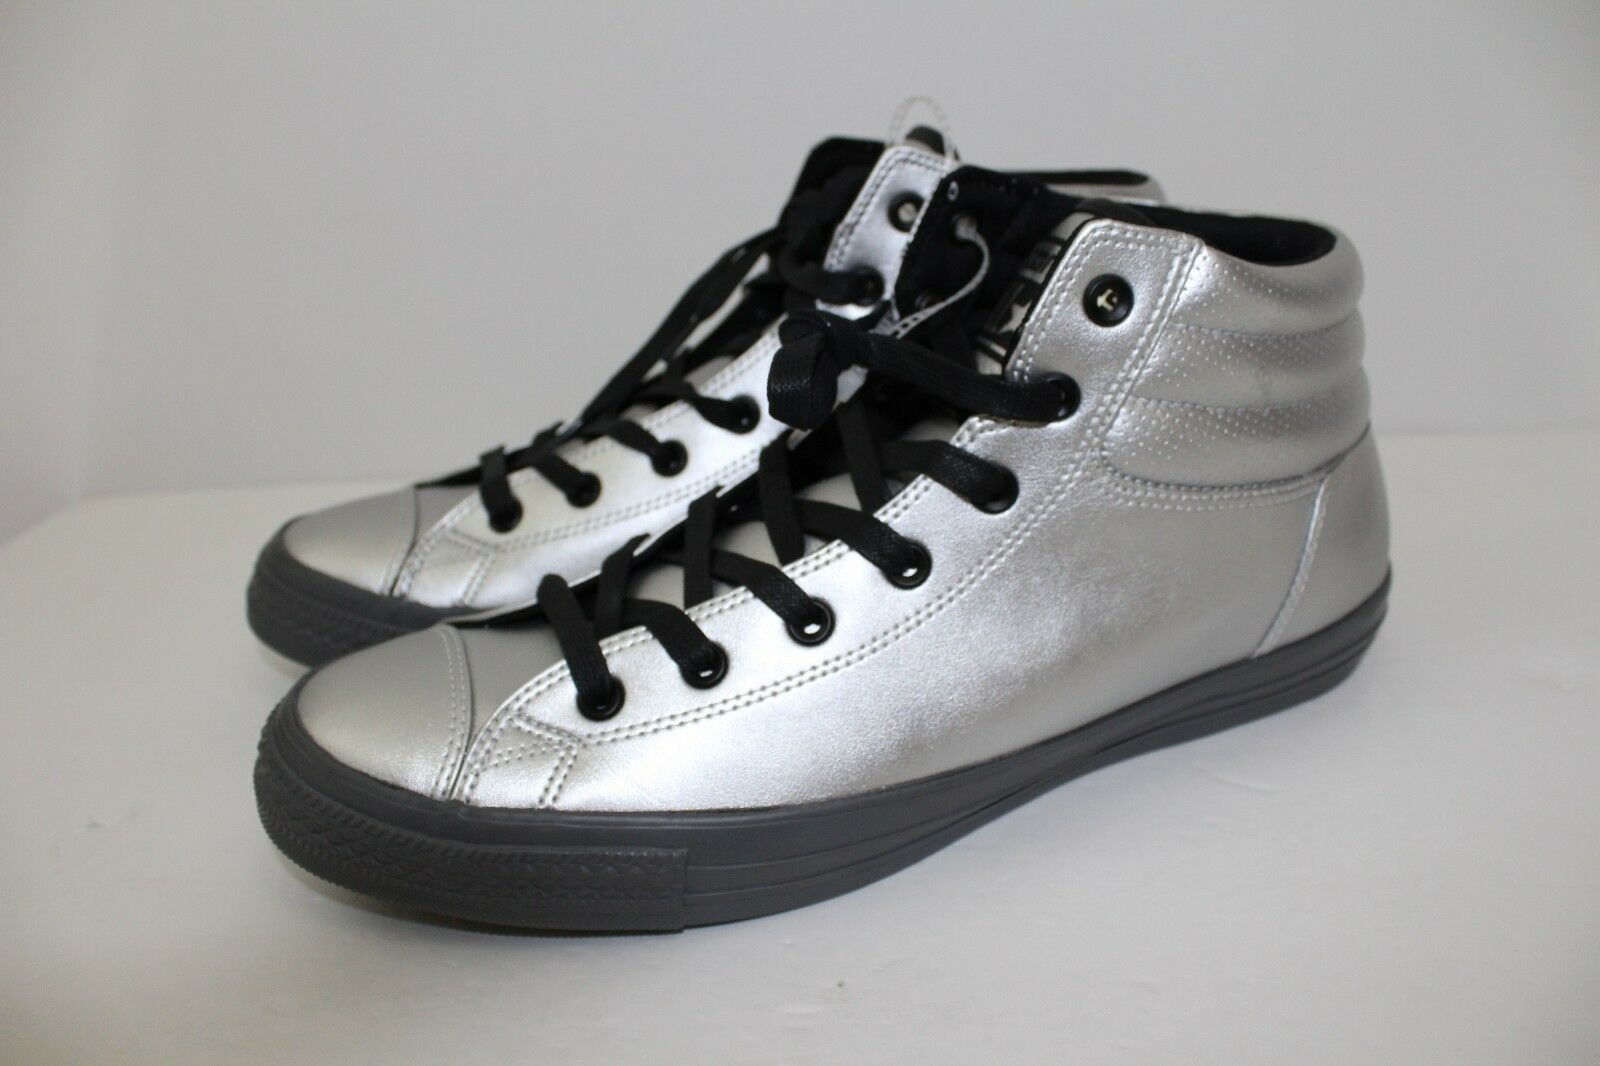 Converse Silver/Thunder/Black All Star Fresh Men's Shoe - Silver/Thunder/Black Converse 152661C - Size 13 48b58b